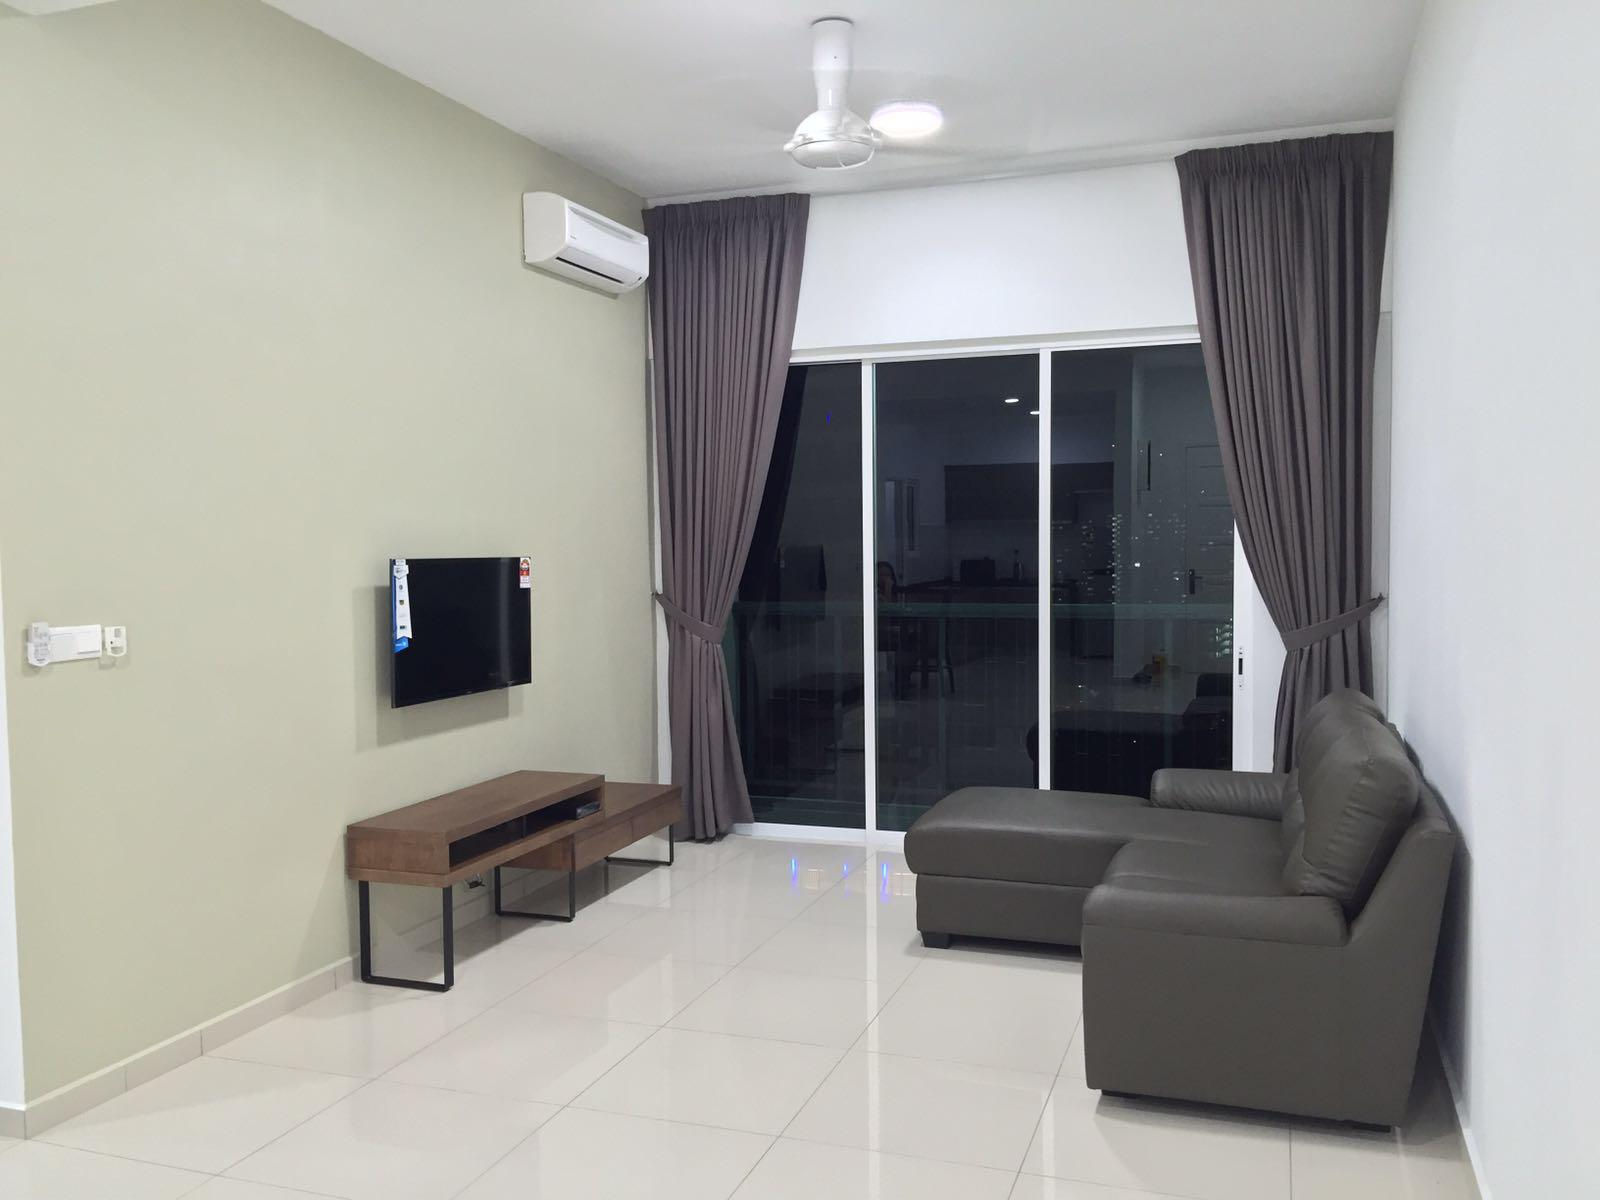 3 Bedroom Condo Comfort Stay - Bayan Lepas - Hotels and Accommodation in Malaysia, Asia